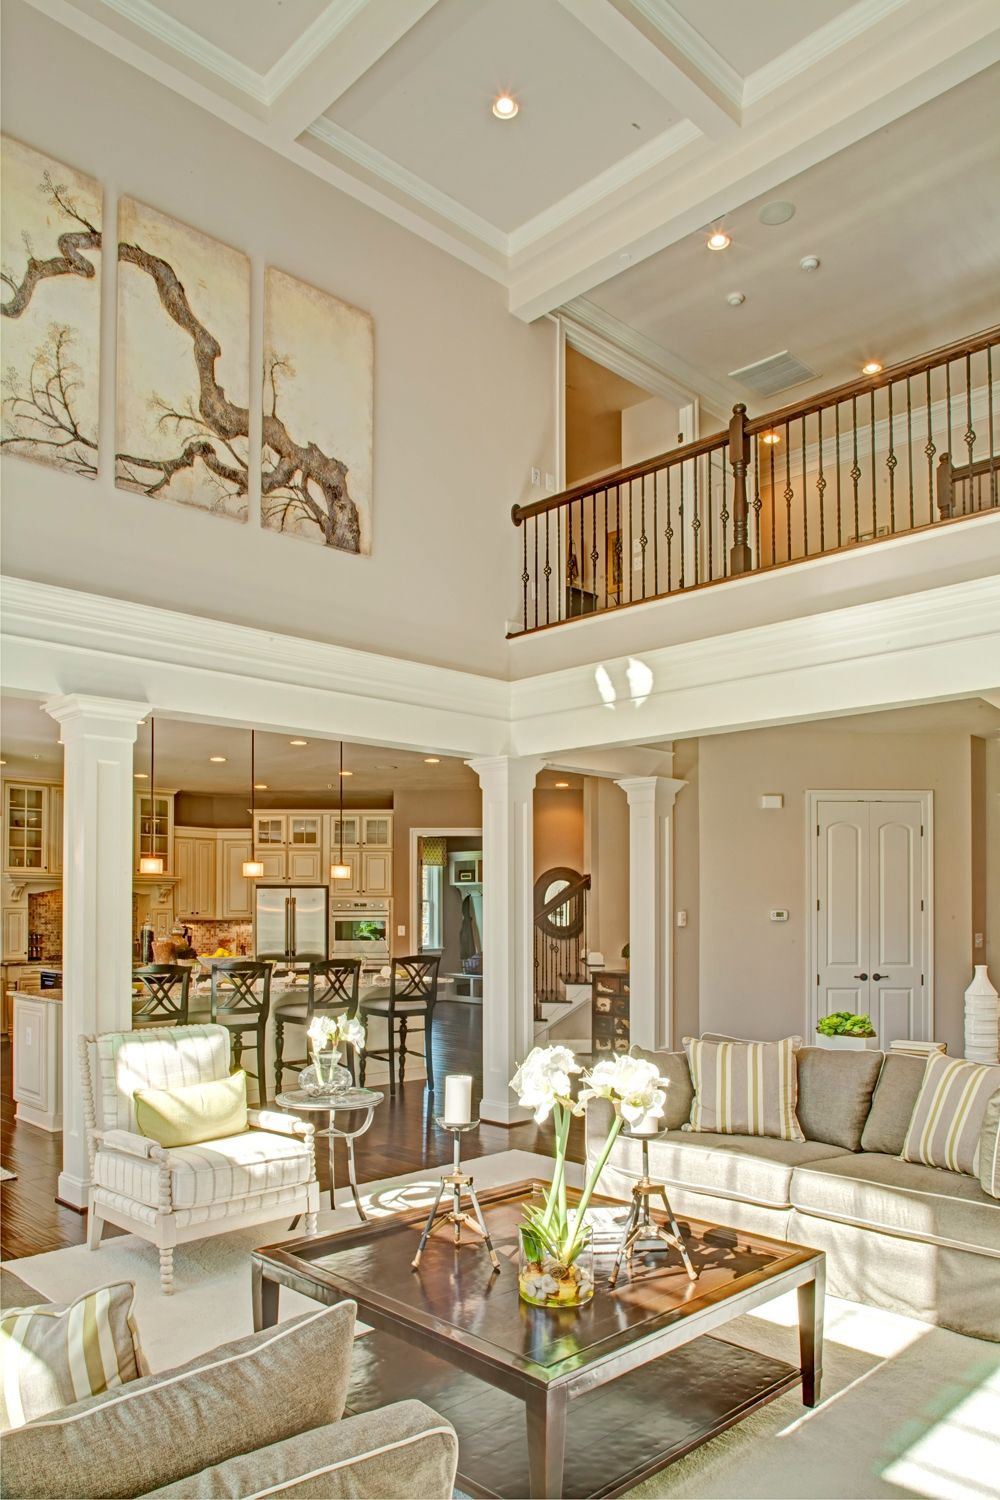 amusing two story living room | Two Story Fireplace Design Ideas Bathroomfurniturezone 2 ...